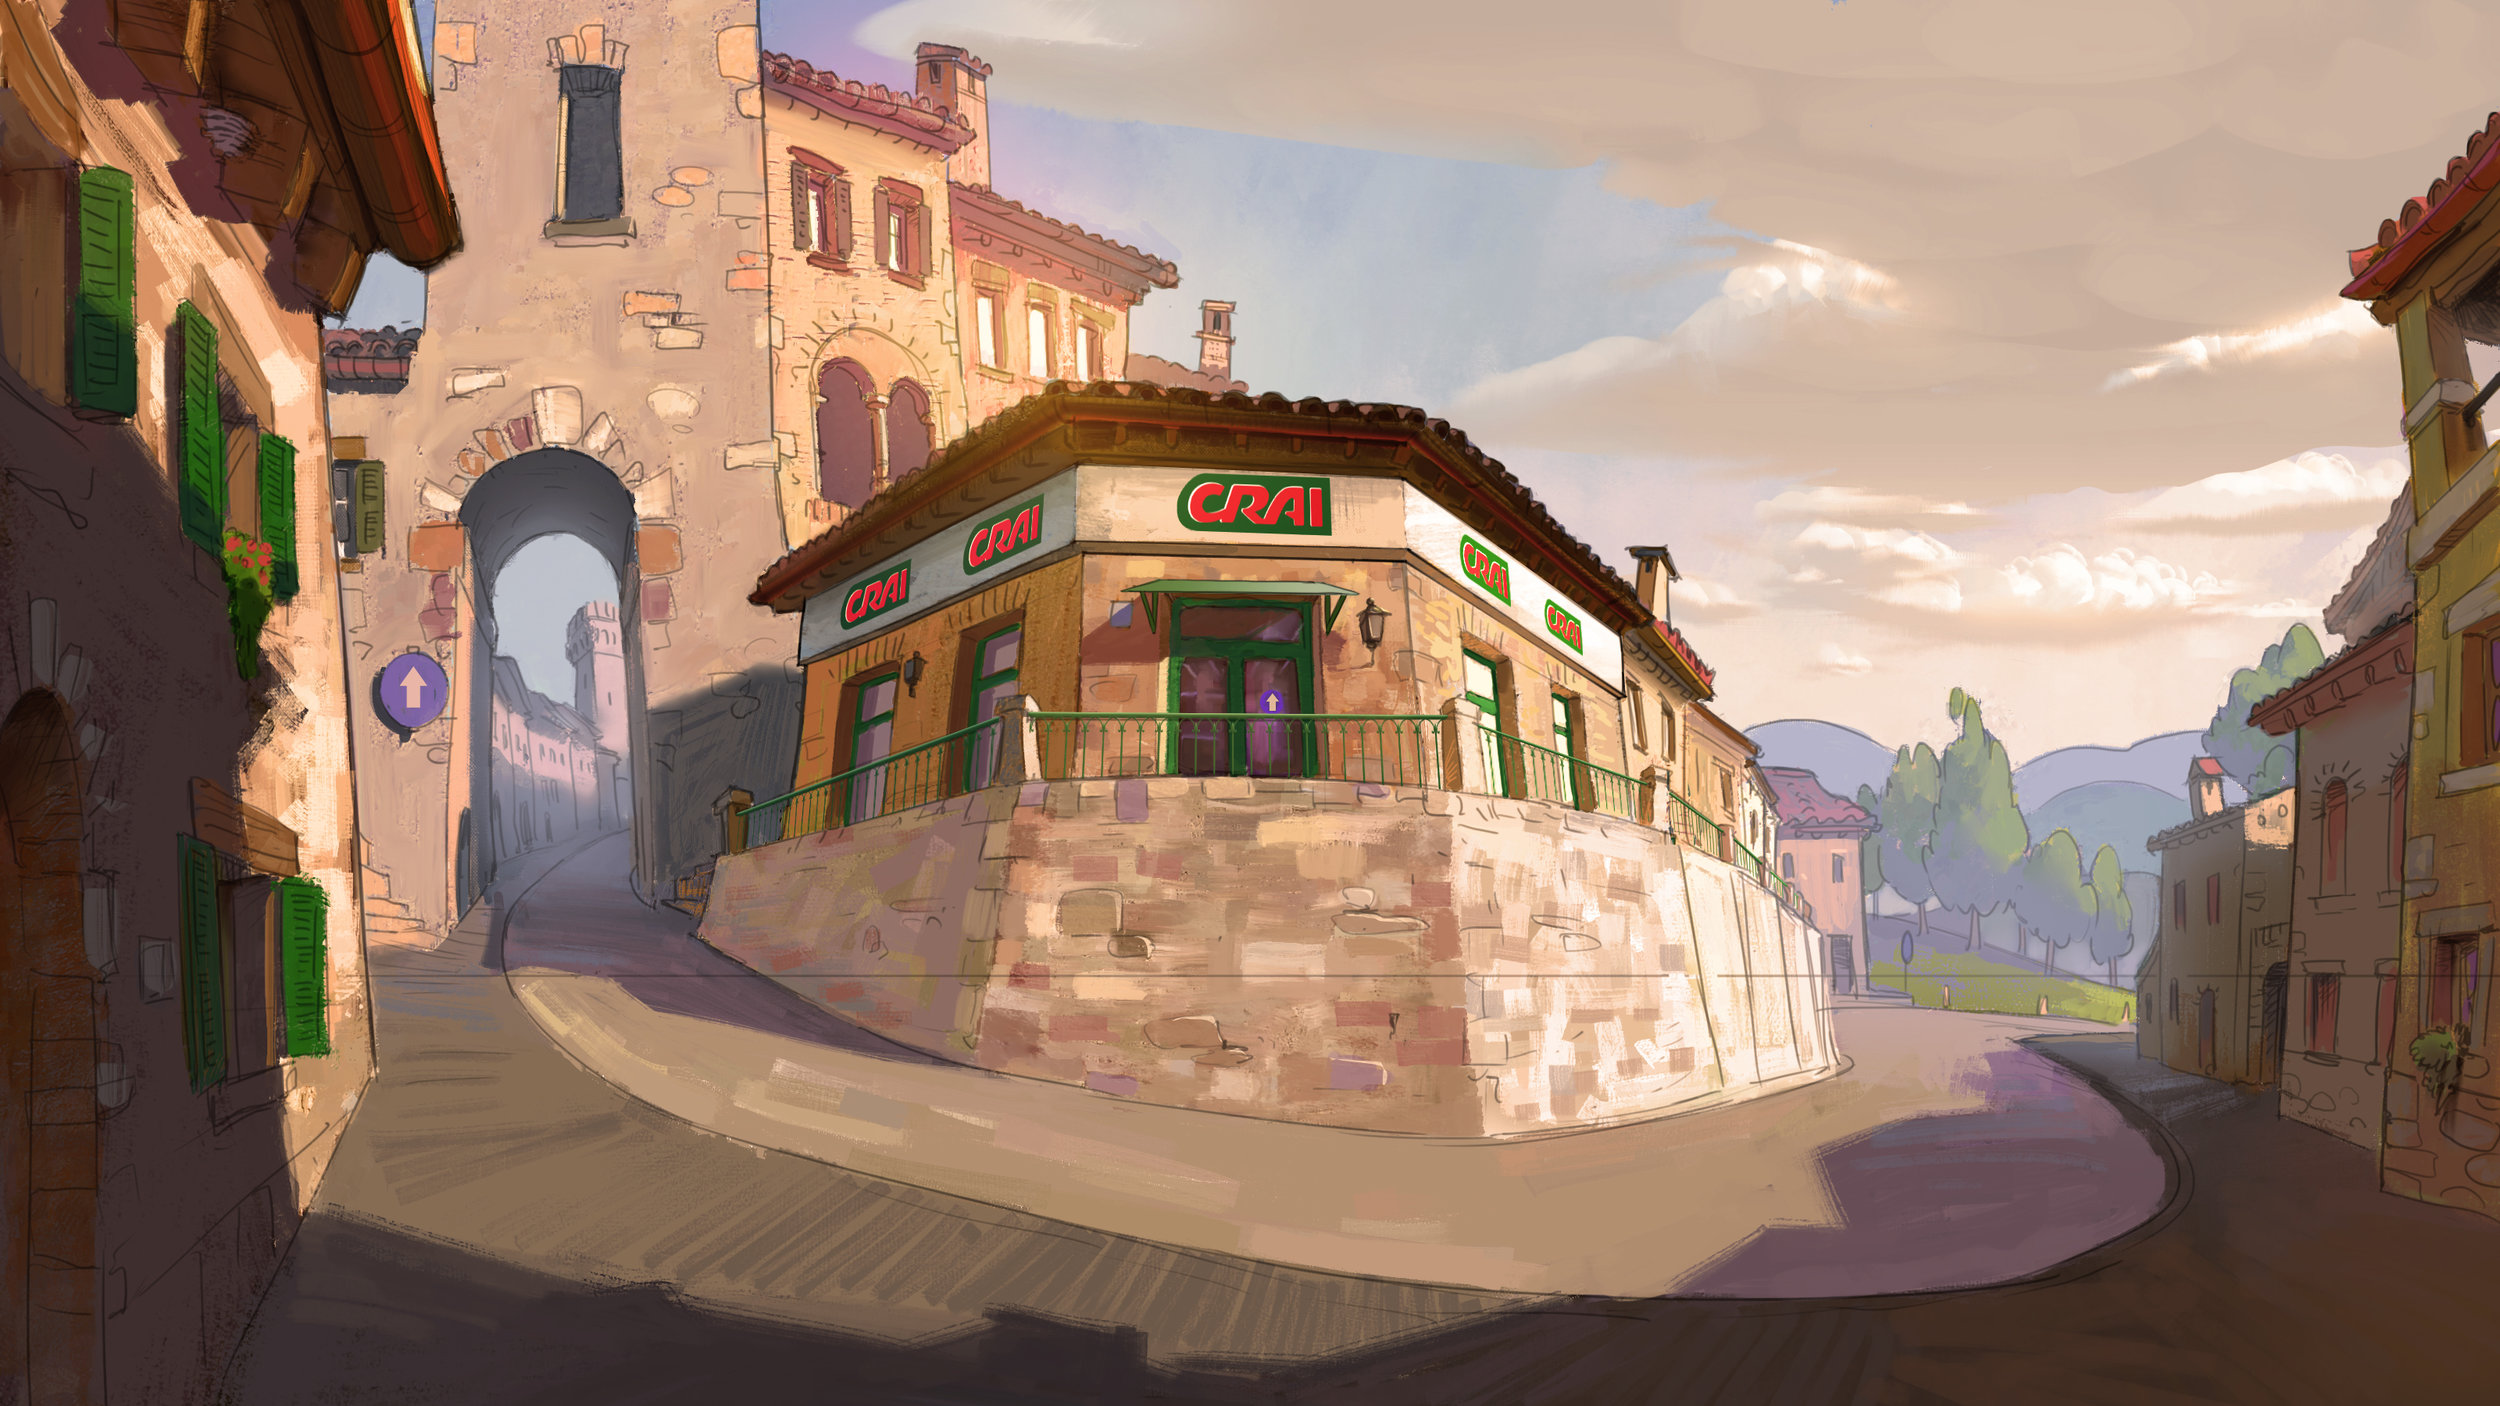 crai_in_the_heart_of_italy_taxfreefilm_concept_054.jpg